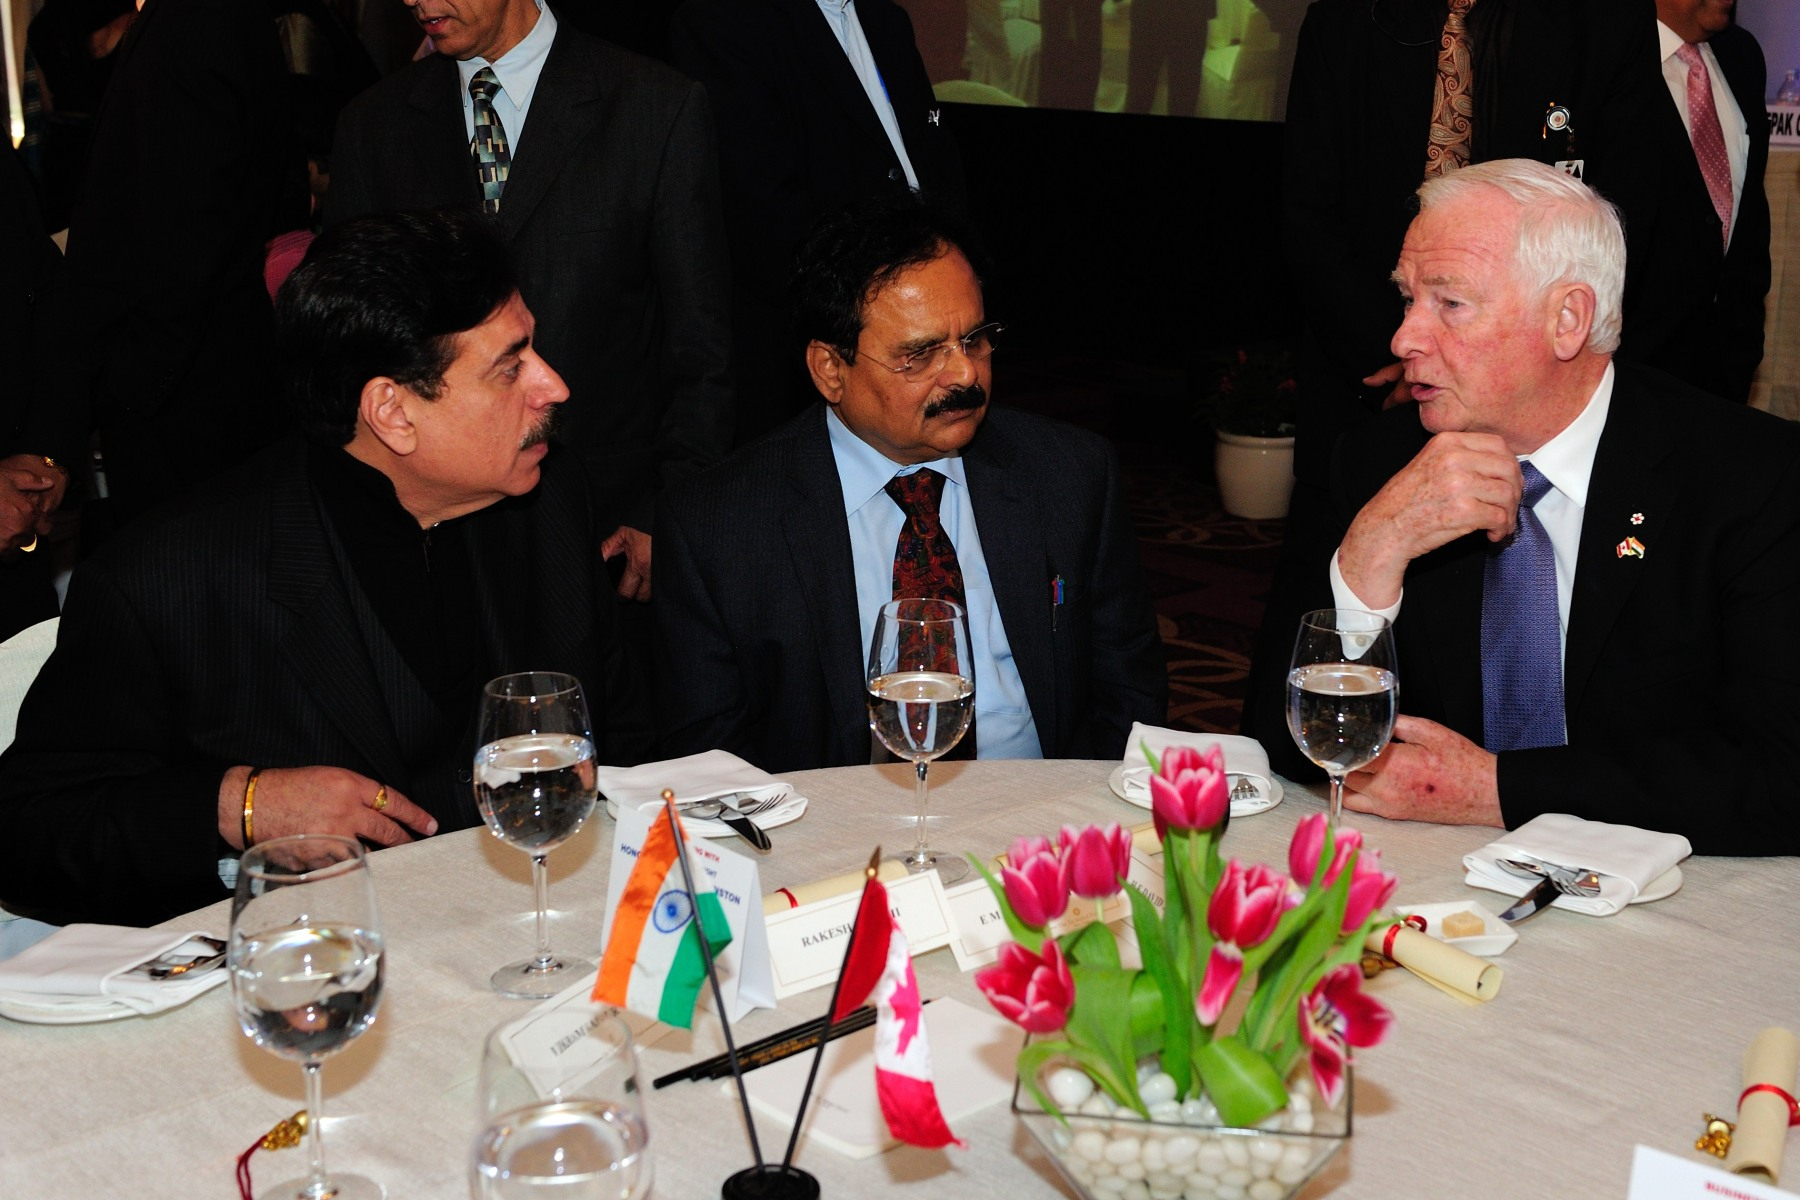 The Associated Chambers of Commerce and Industry of India, in partnership with the Federation of Indian Chambers of Commerce and Industry, and the Confederation of Indian Industry, hosted a business luncheon on the occasion of His Excellency's visit to the country to highlight the Canada-India bilateral commercial engagement.